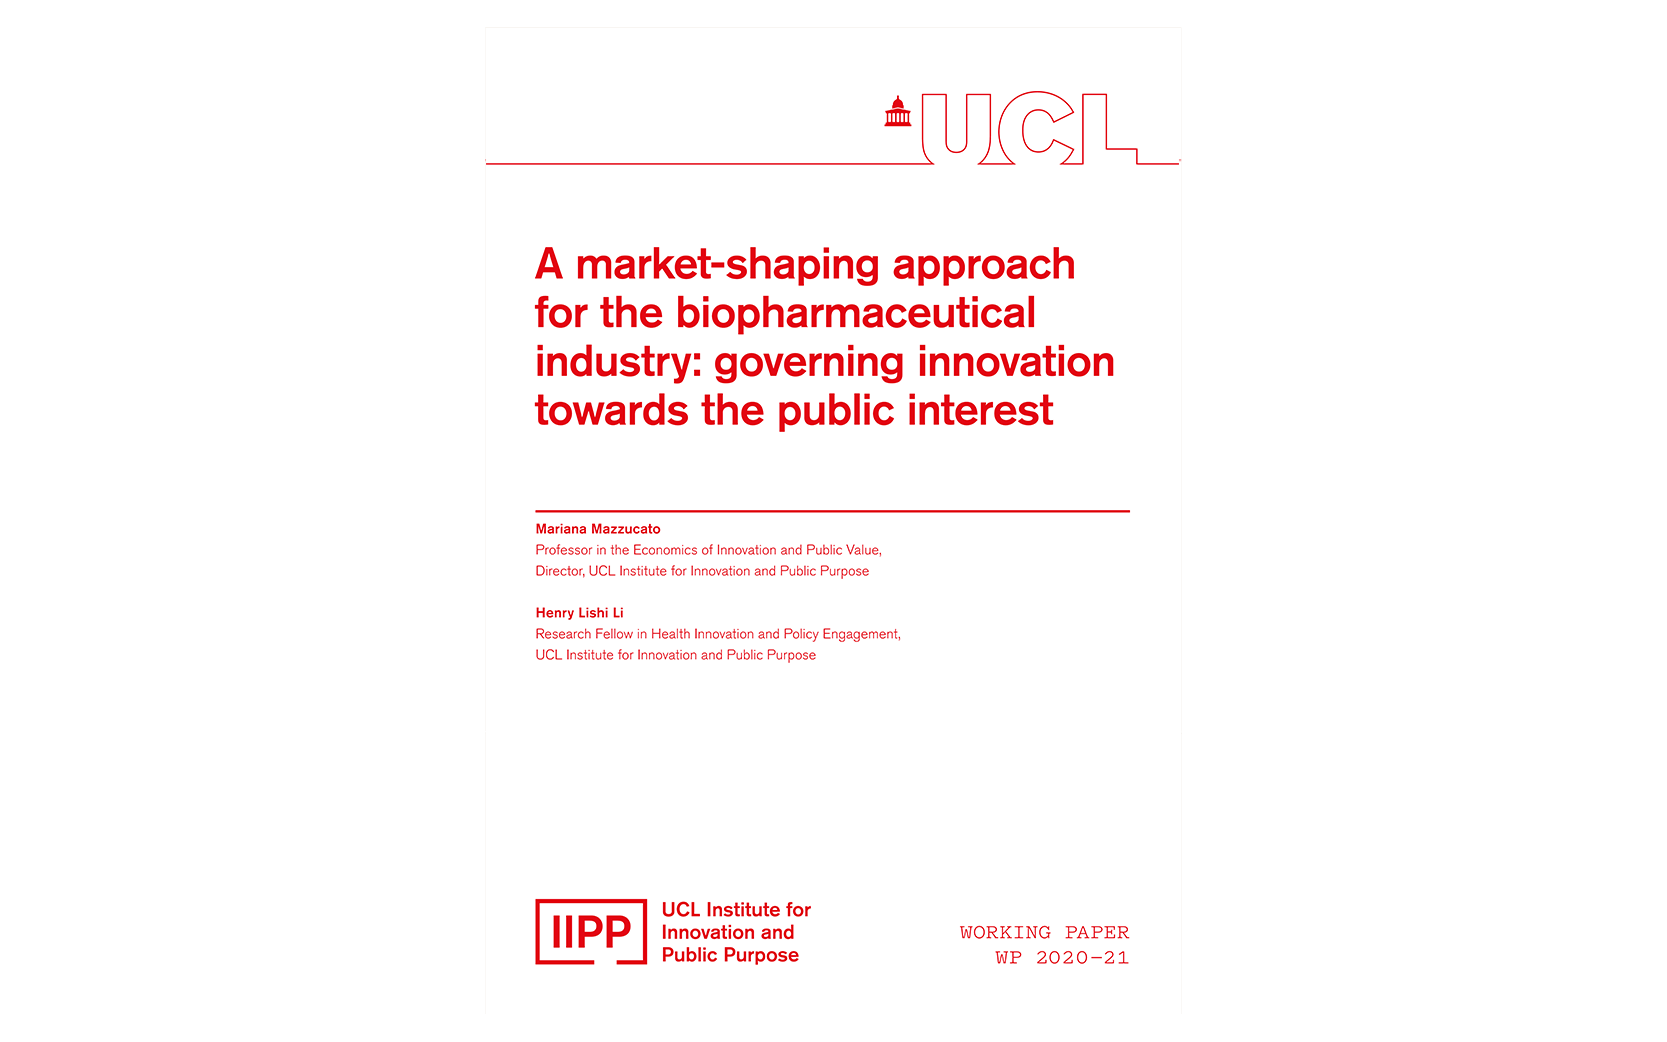 cover_final_iipp-wp2020-21-market-shaping_approach_for_the_biopharmaceutical_industry.png